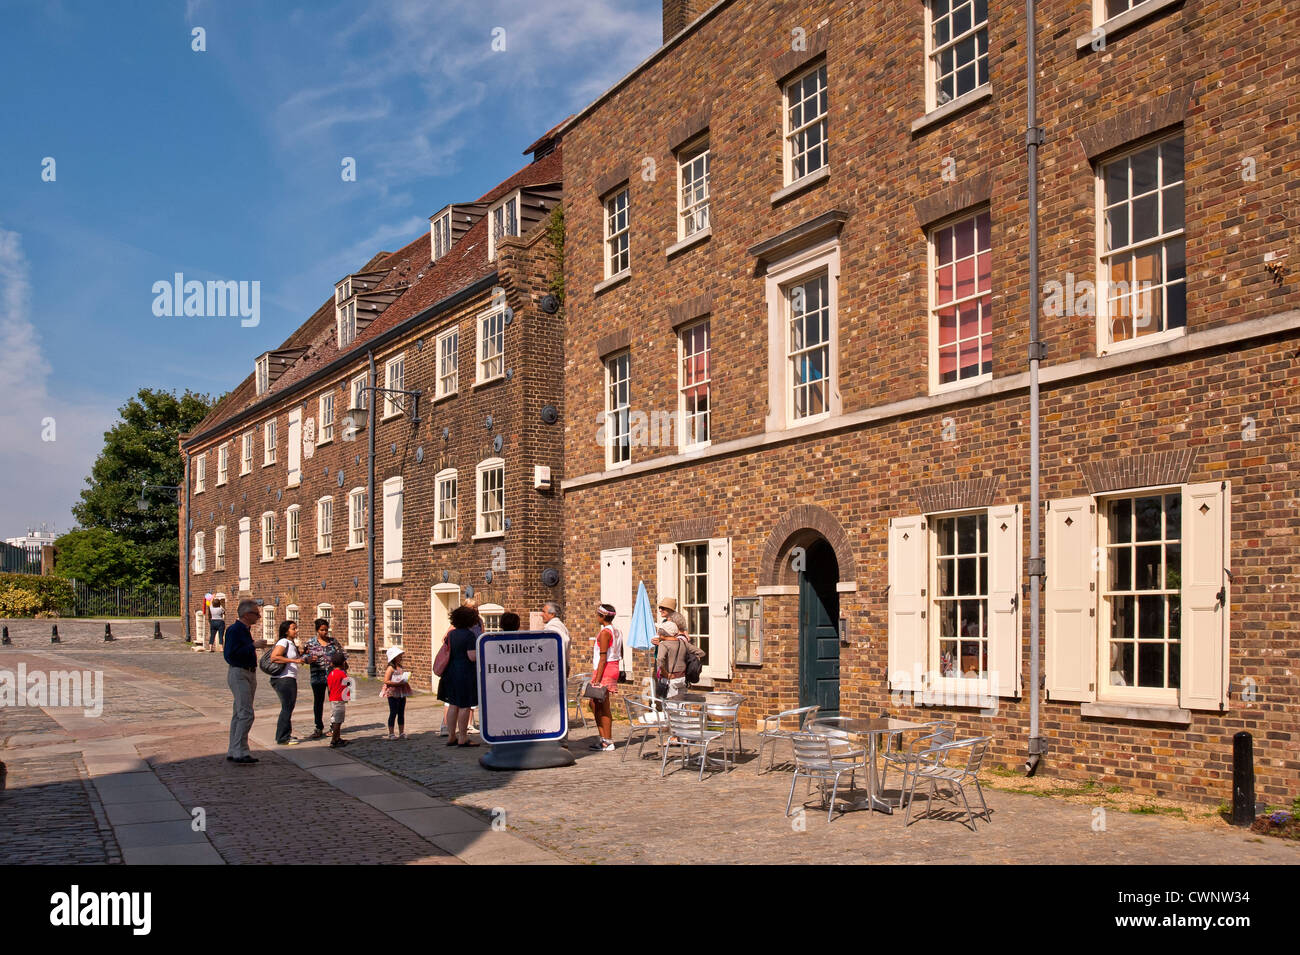 House Mill, a Tidal Mill on the River Lea in Bromley-by-Bow, London - Stock Image